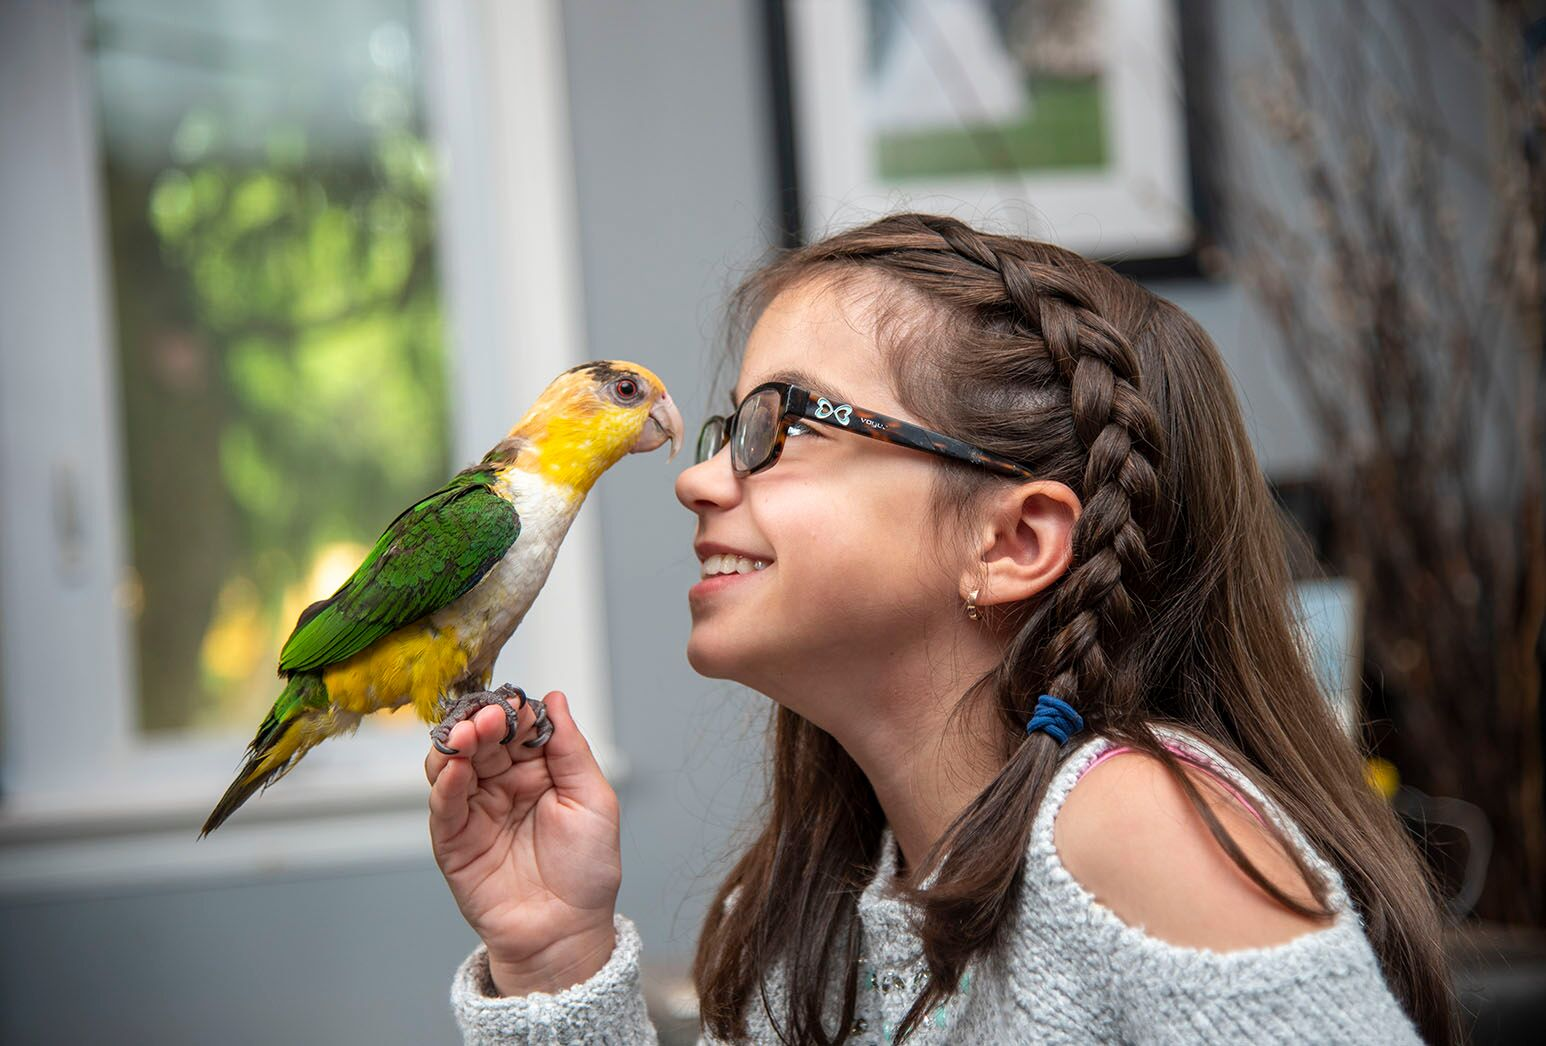 Young girl with brown hair holding a parrot and smiling face to face with it.